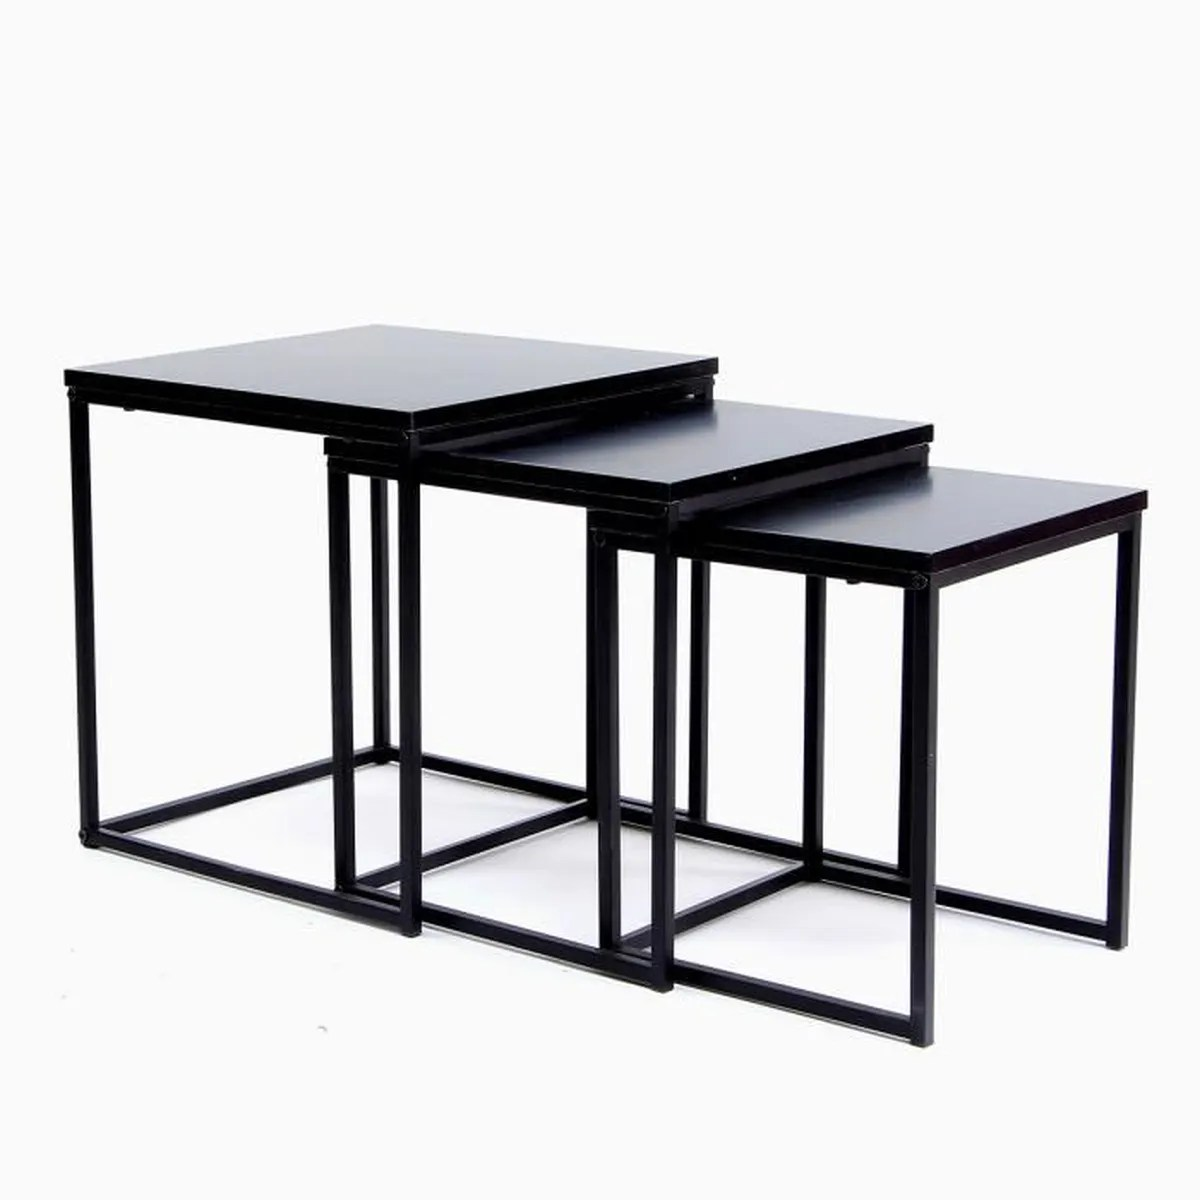 Store Banne Manuel La Redoute Table Gigogne Metal Table Gigogne M Tal Th Oleine The